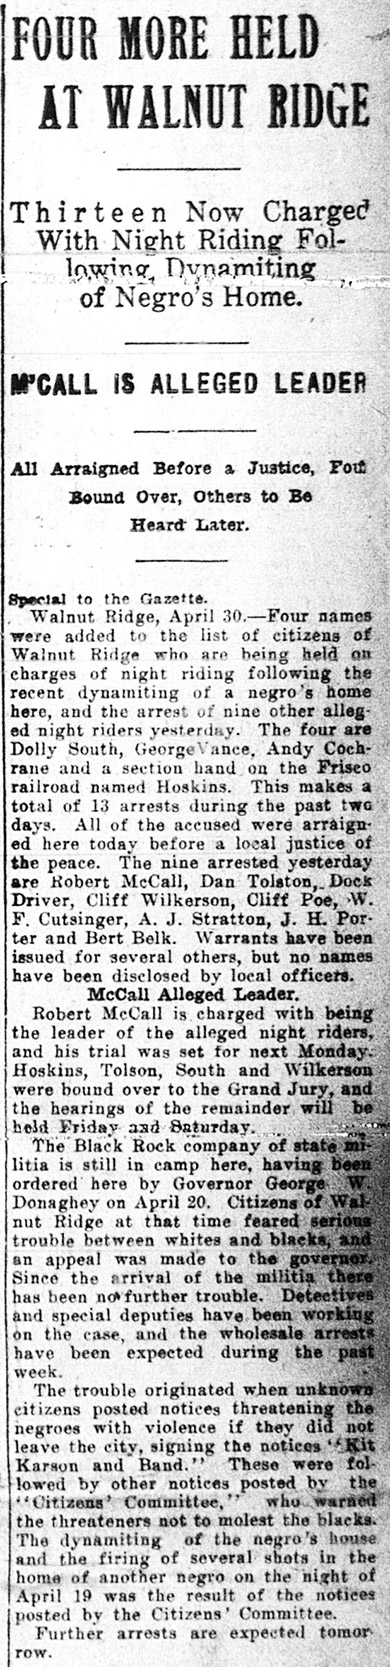 Article on the Walnut Ridge Race War